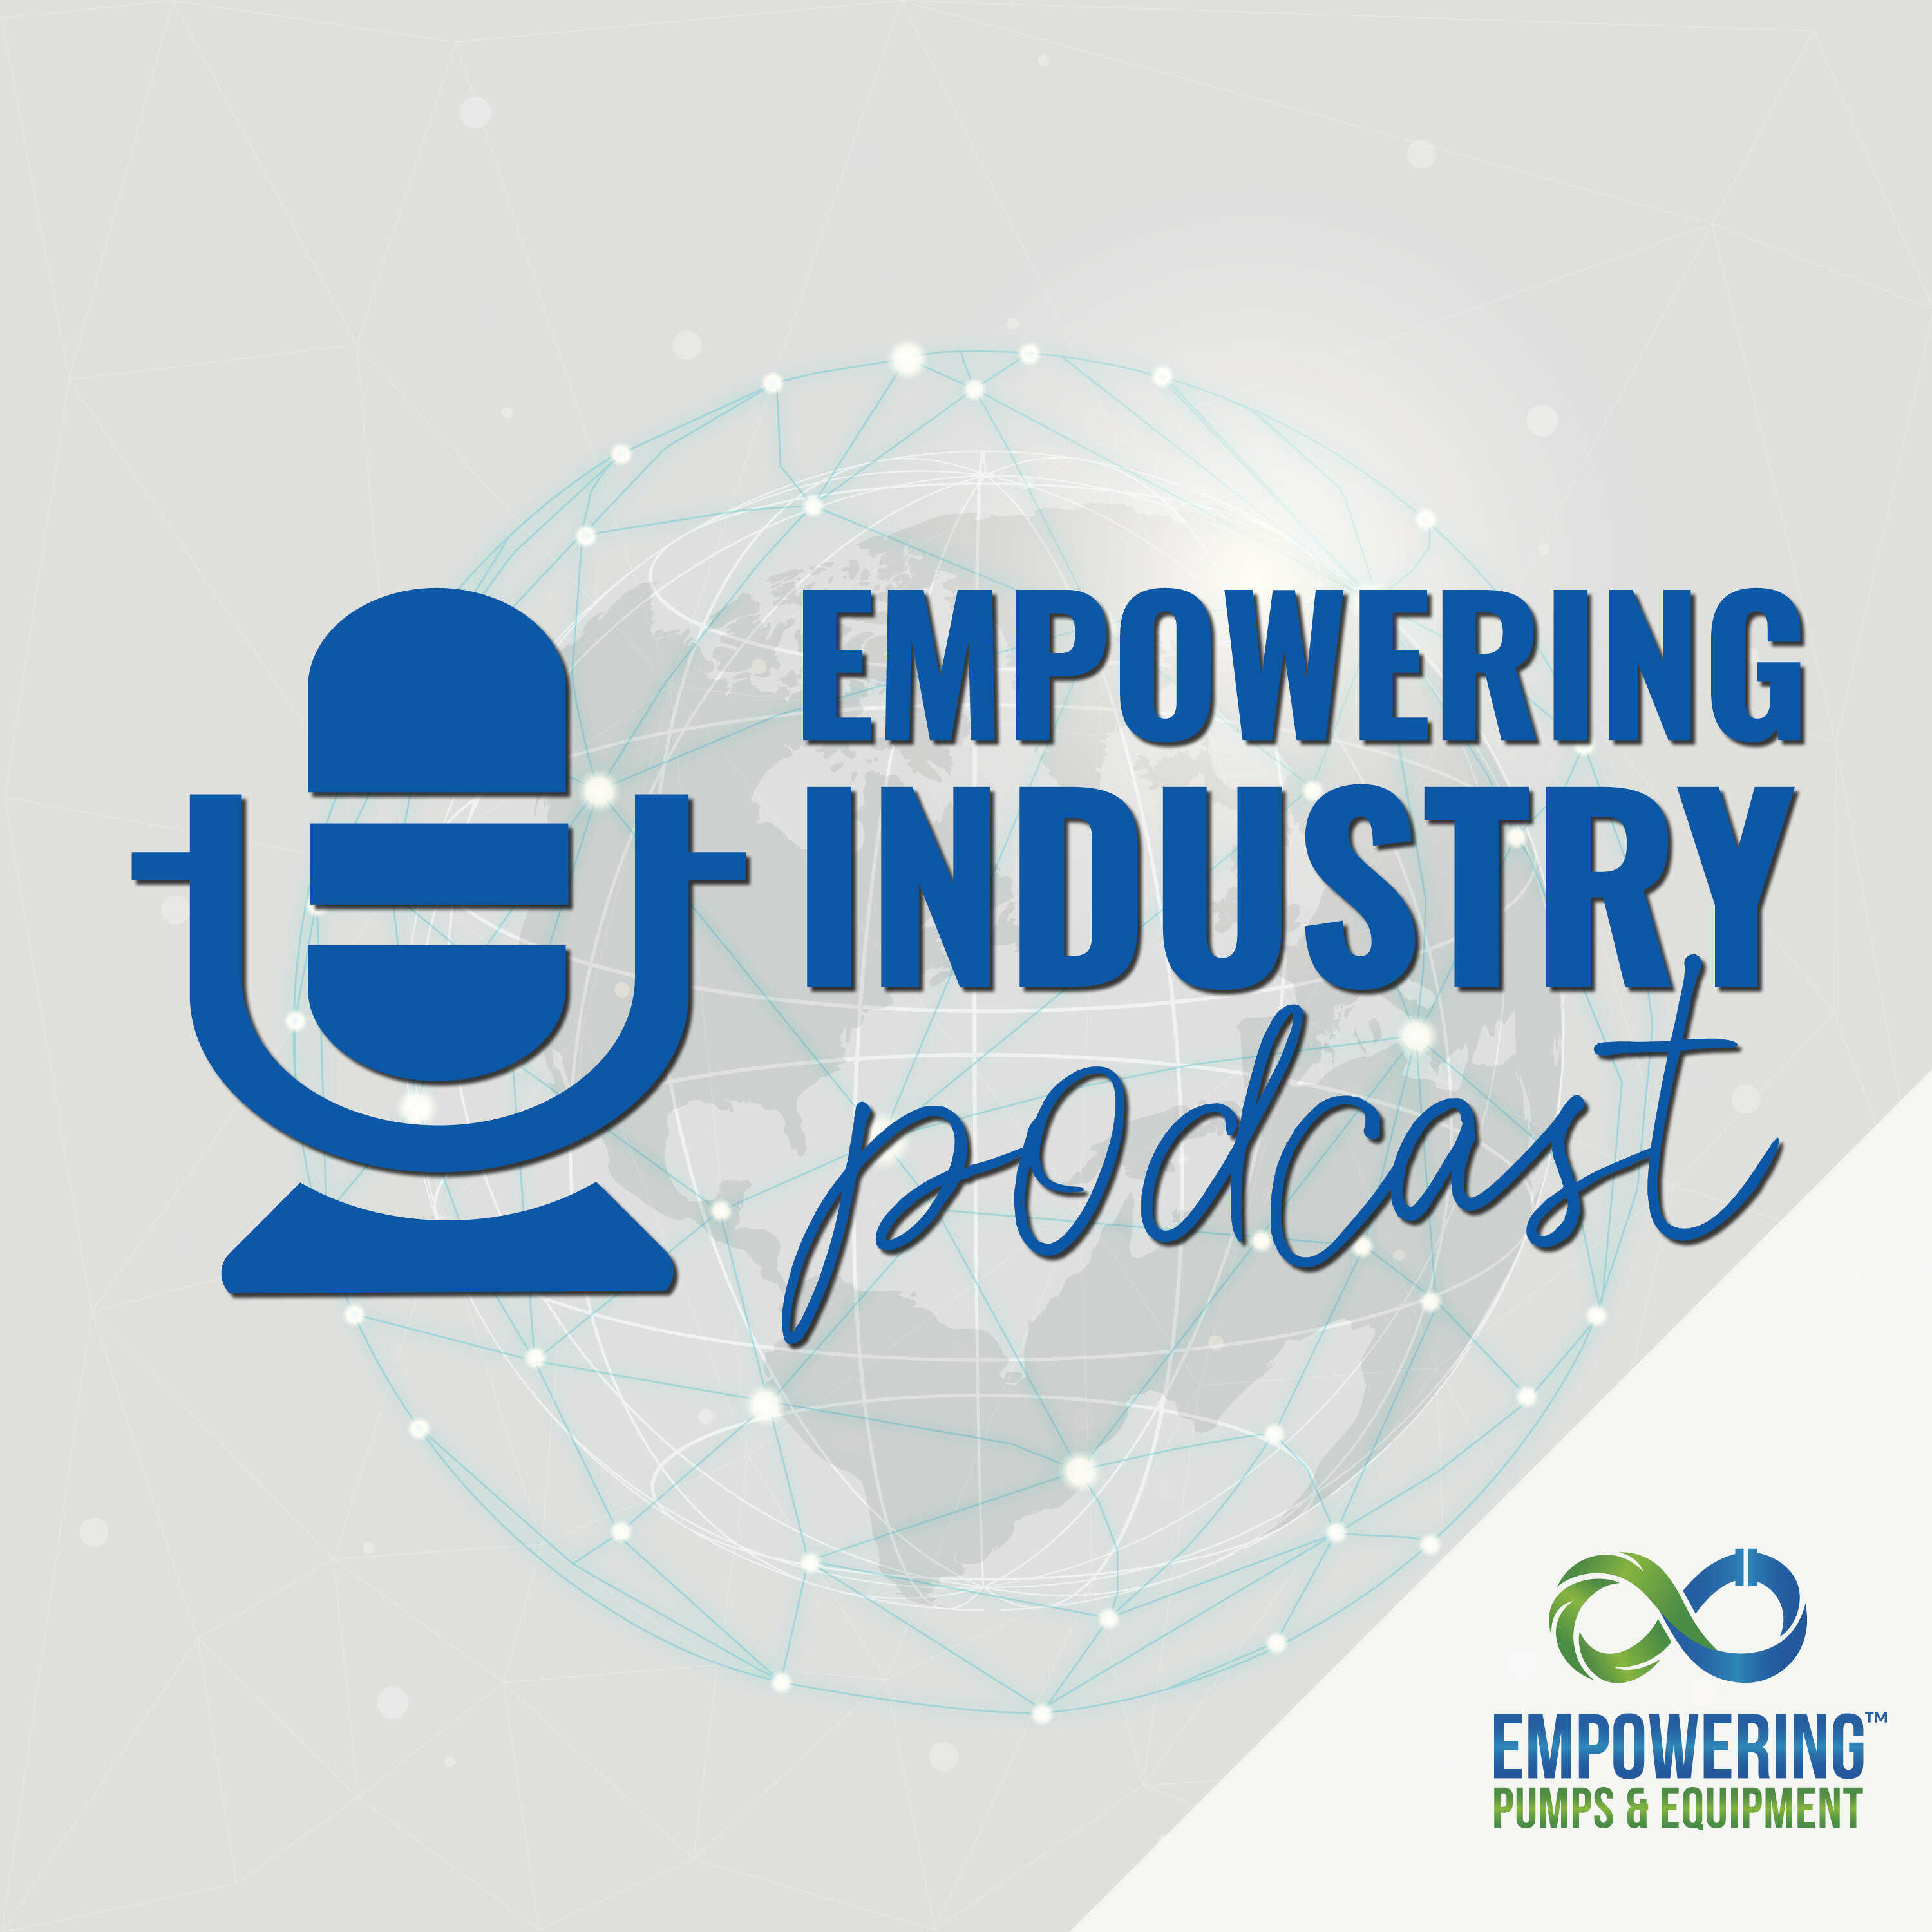 Empowering Industry Podcast - A Production of Empowering Pumps & Equipment